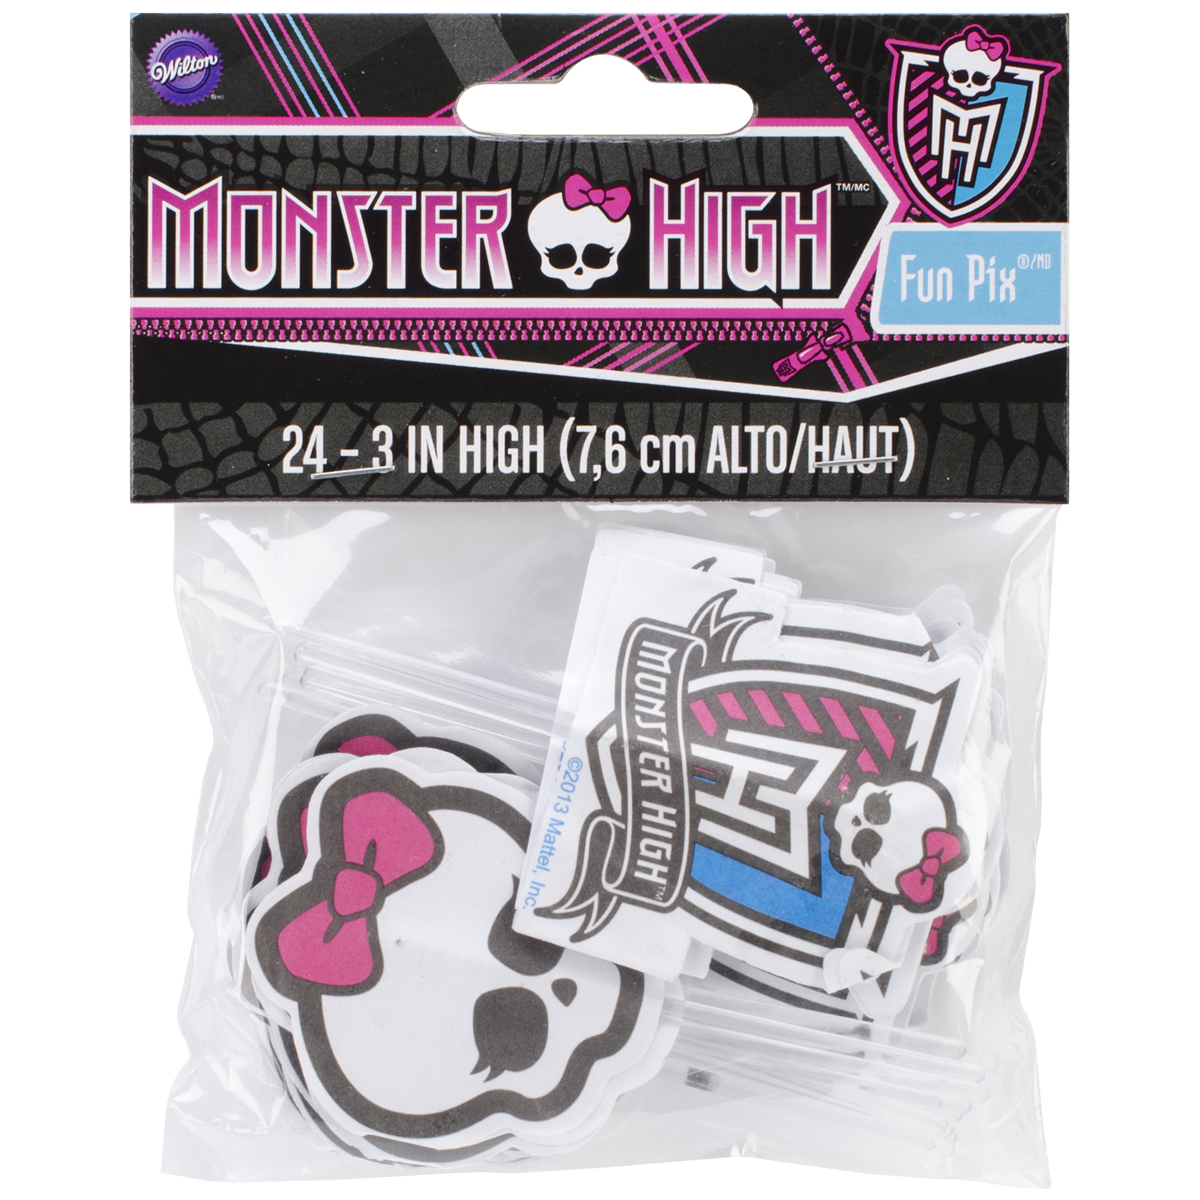 Wilton Decorating Fun Pix, Monster High 24 ct. 2113-6677